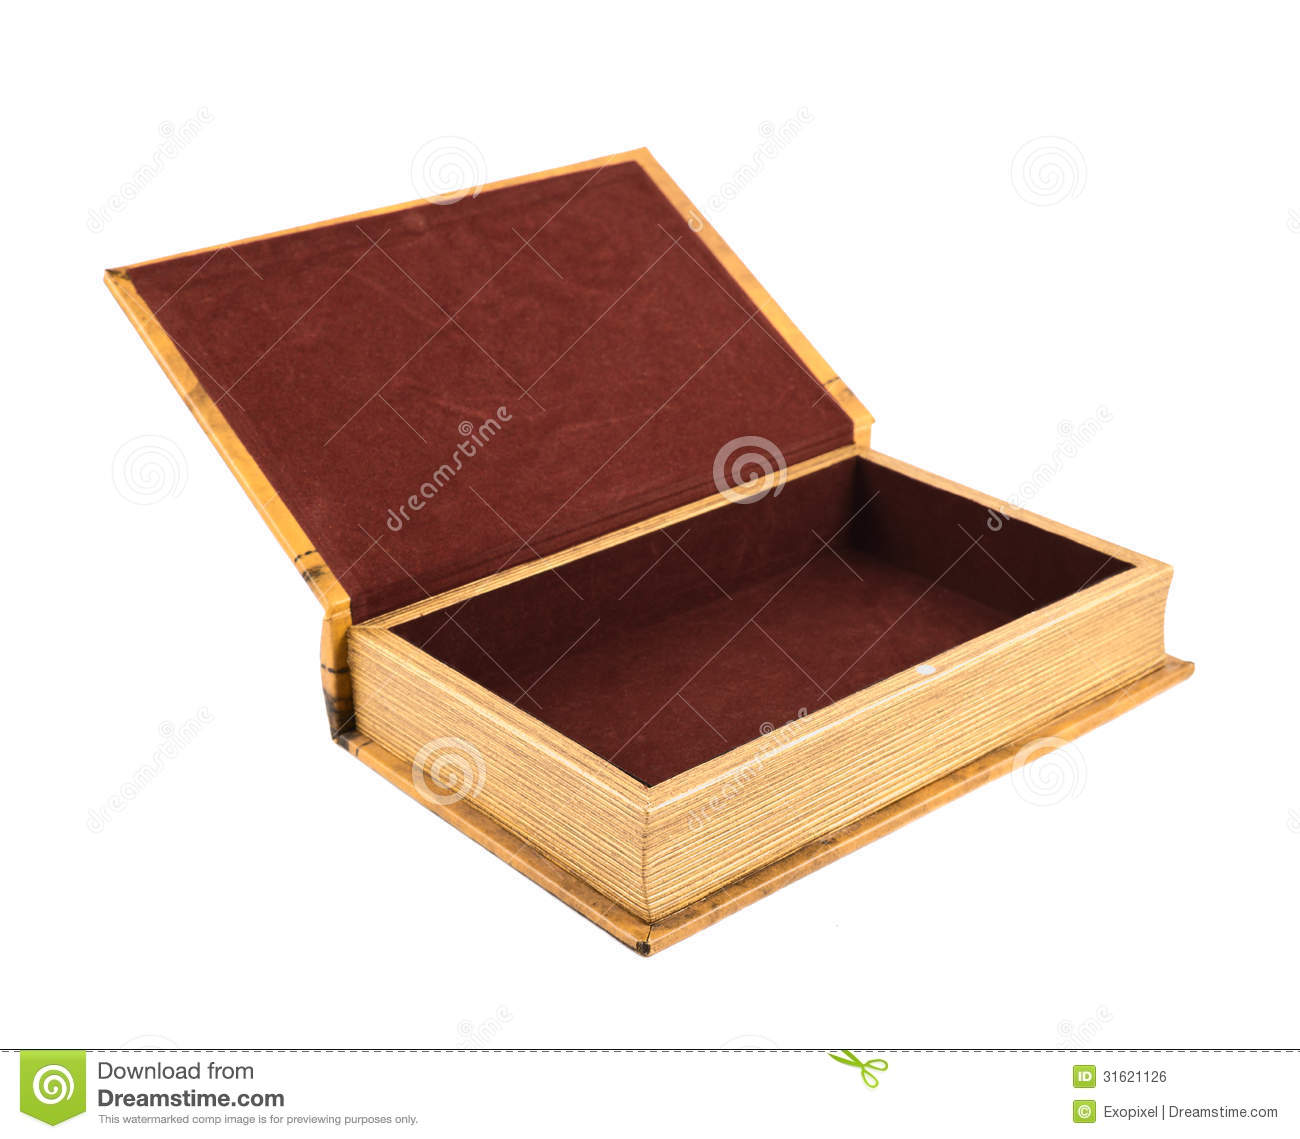 Book Shaped Casket Or Jewelry Box Isolated Stock Photo Image of